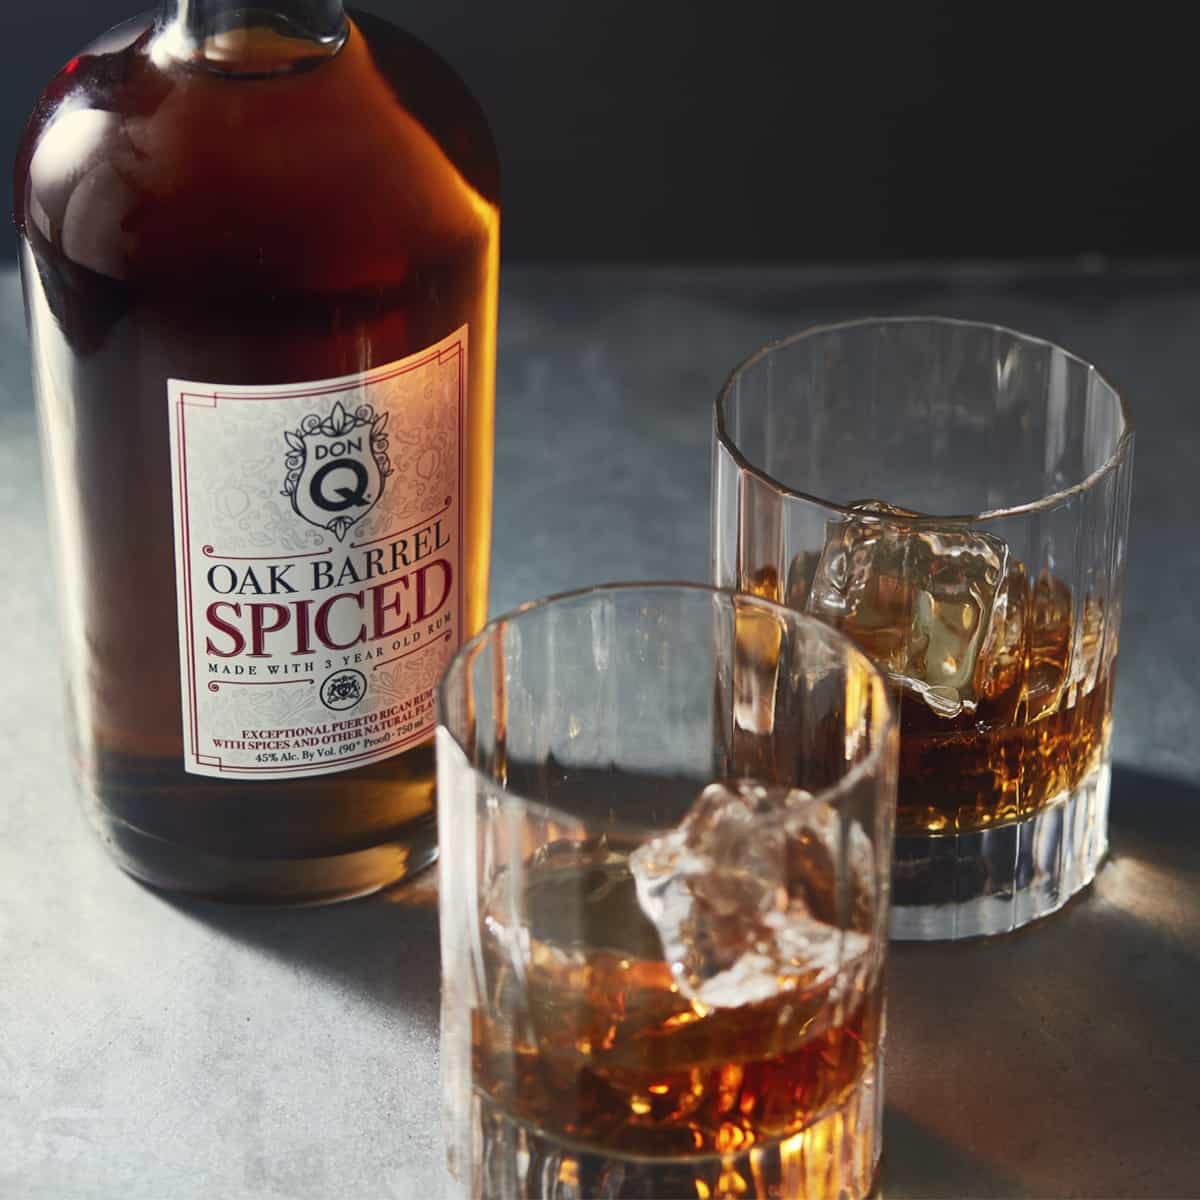 Award-winning Don Q Oak Barrel Spiced rum is aged for 3 years. With flavors of vanilla, cinnamon, and caramel it'll remind you of apple pie in a glass.   TravelingWellForLess.com